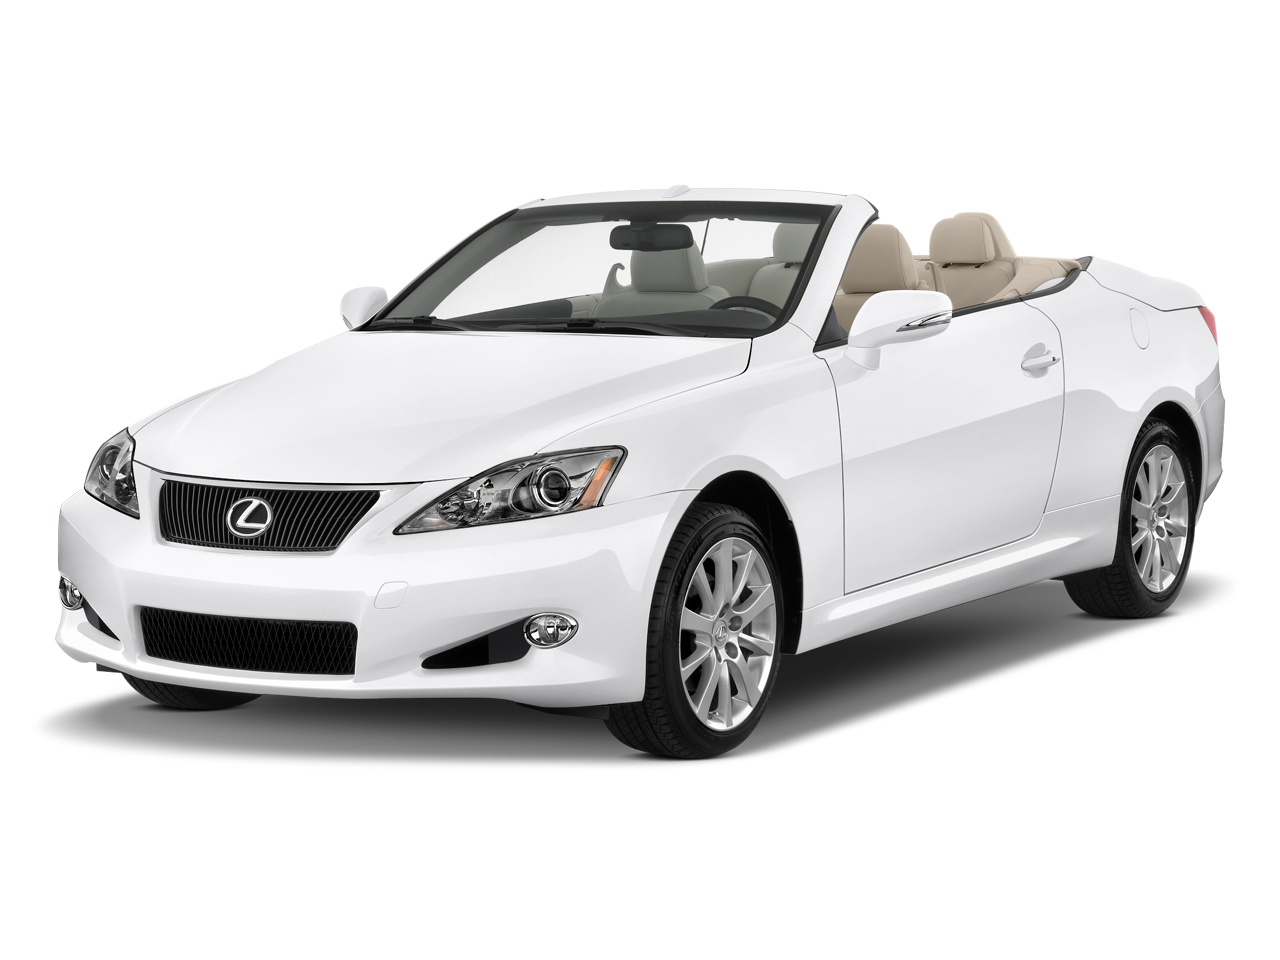 2011 lexus is 250c 2 door convertible auto angular front. Black Bedroom Furniture Sets. Home Design Ideas